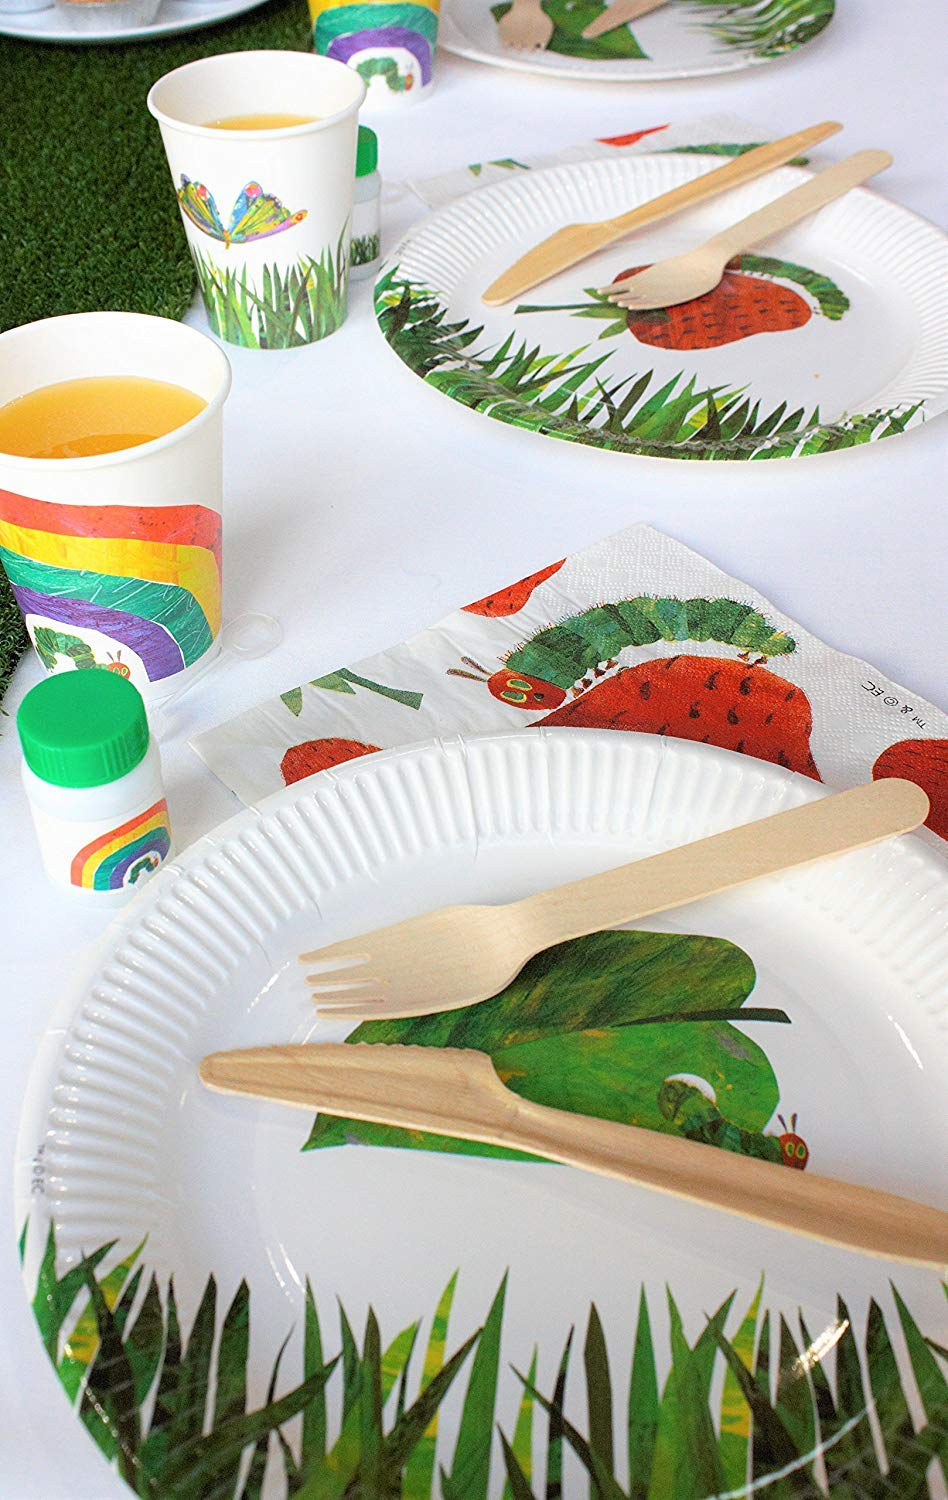 Talking Tables The Very Hungry Caterpillar Kids Birthday Paper Plate (24 Pack), 11, Green by Talking Tables